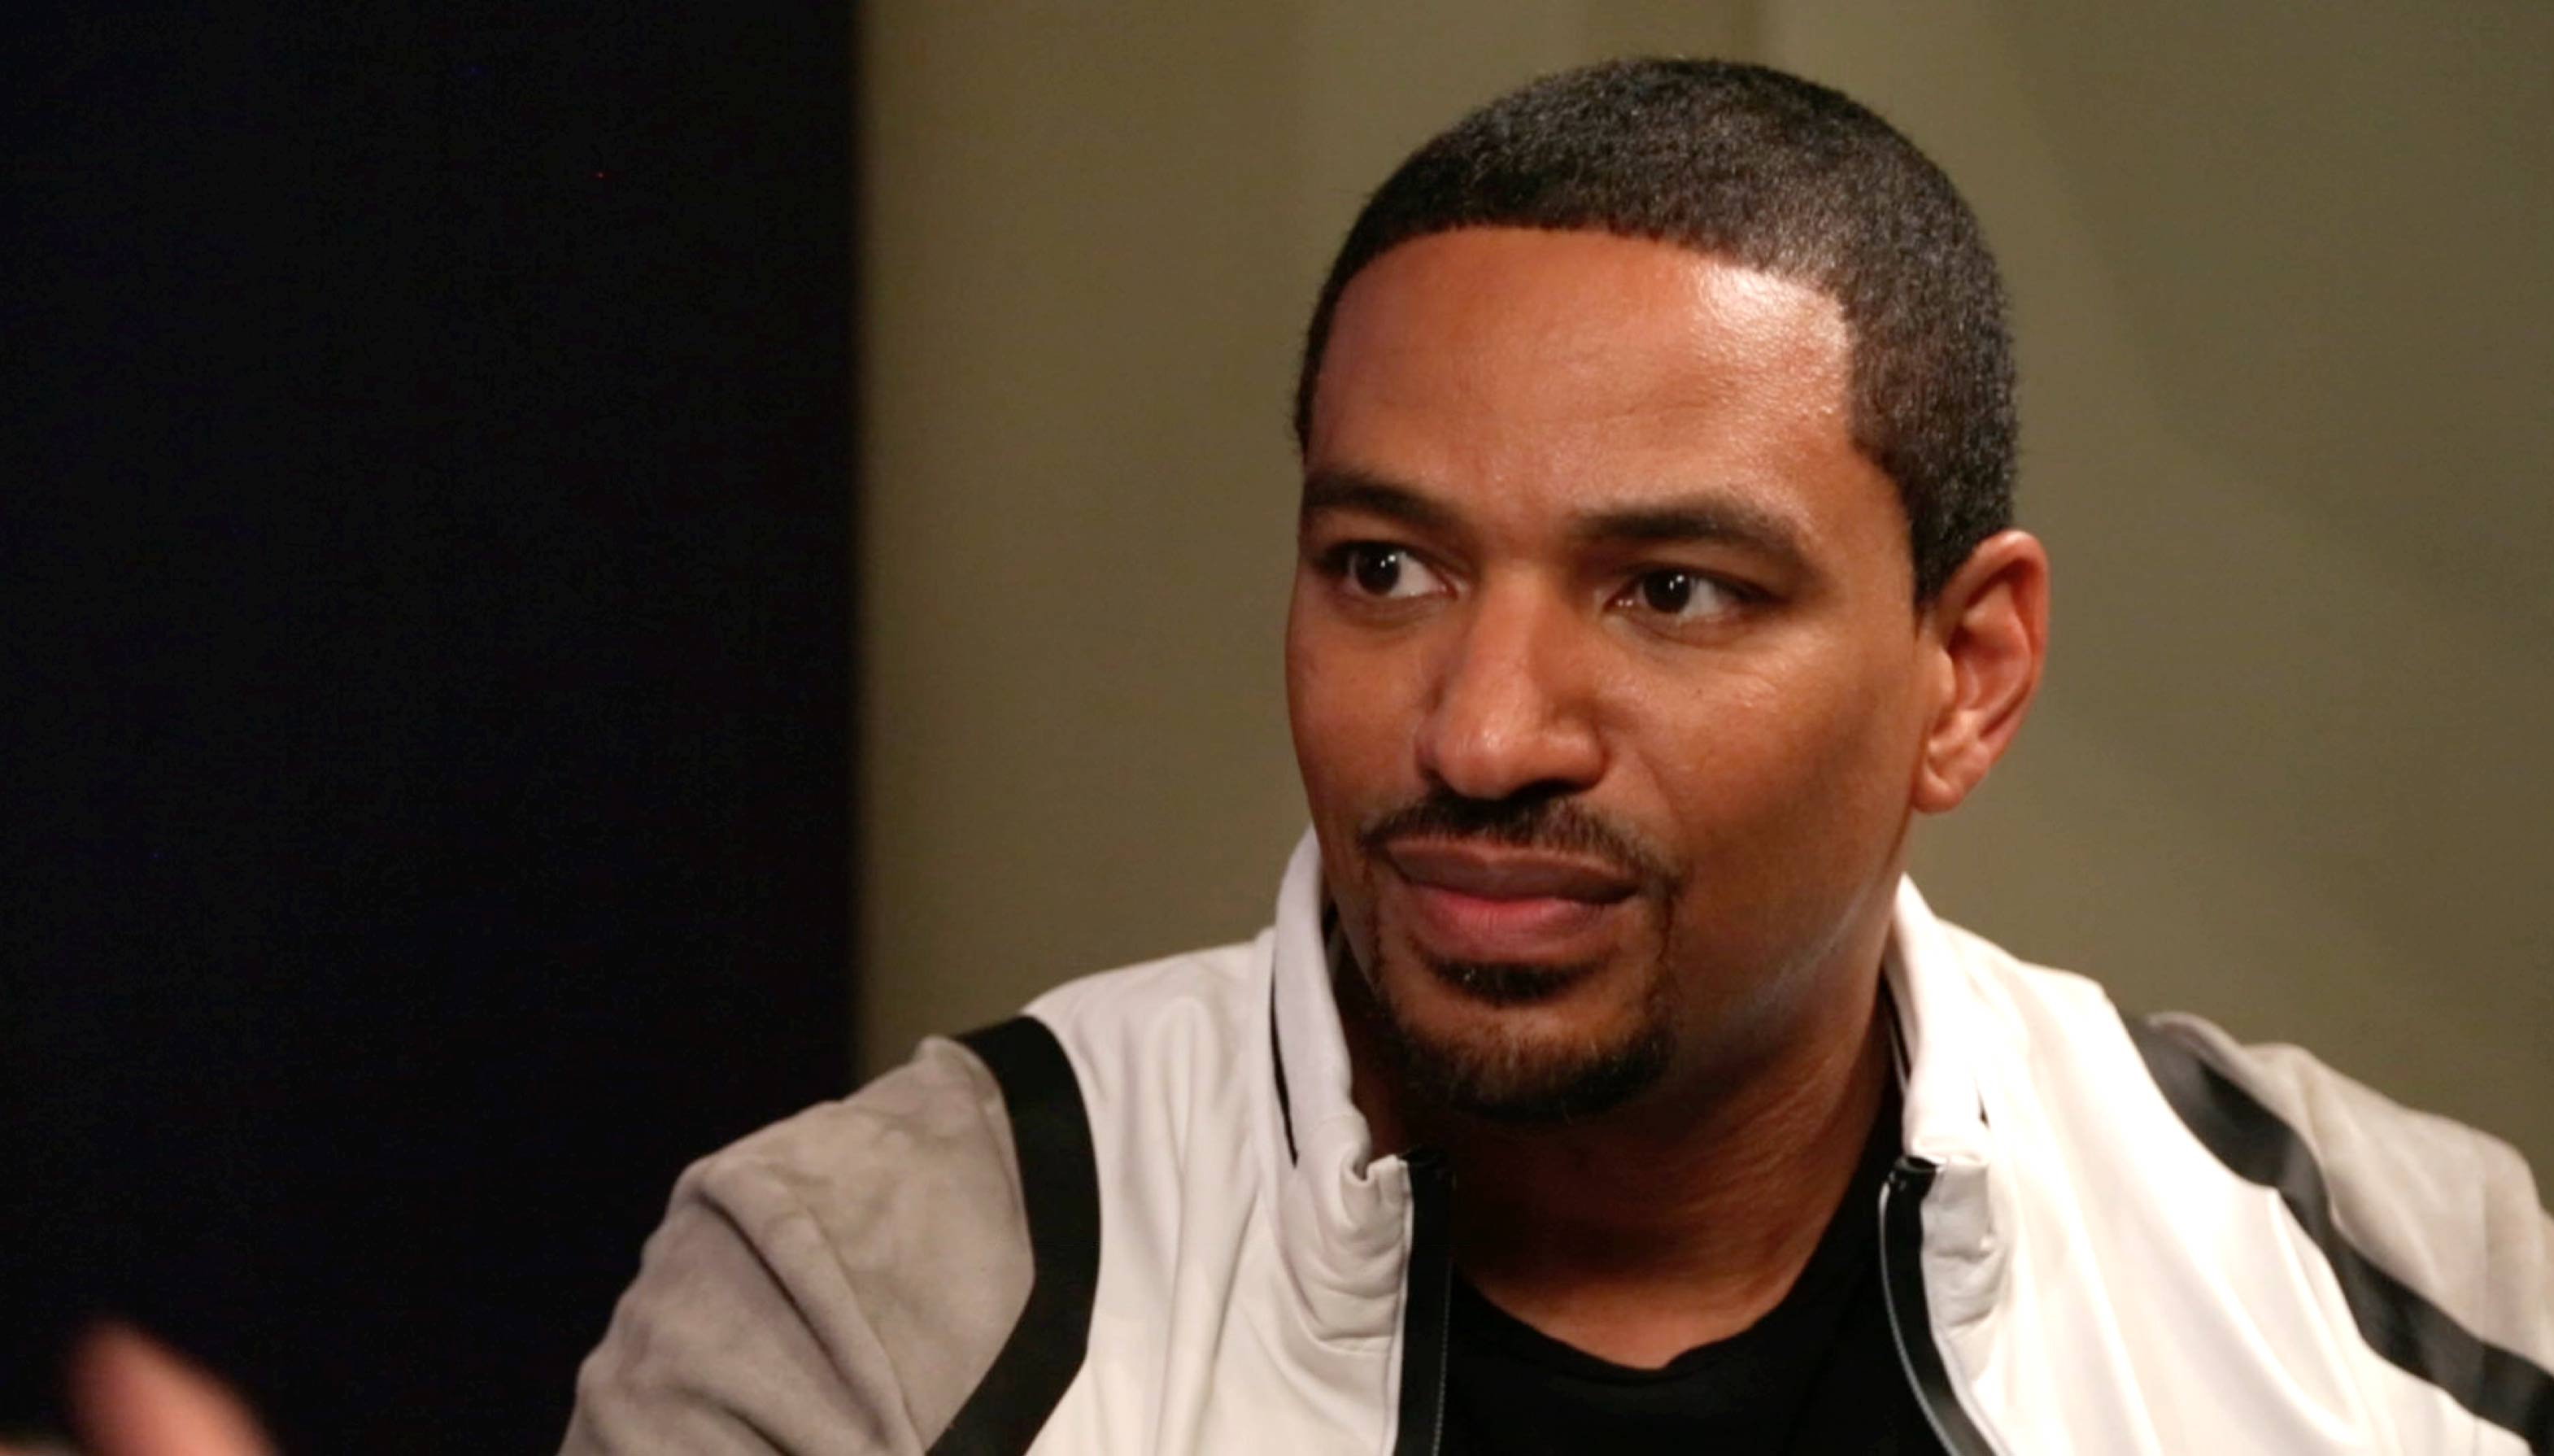 Laz Alonso Background